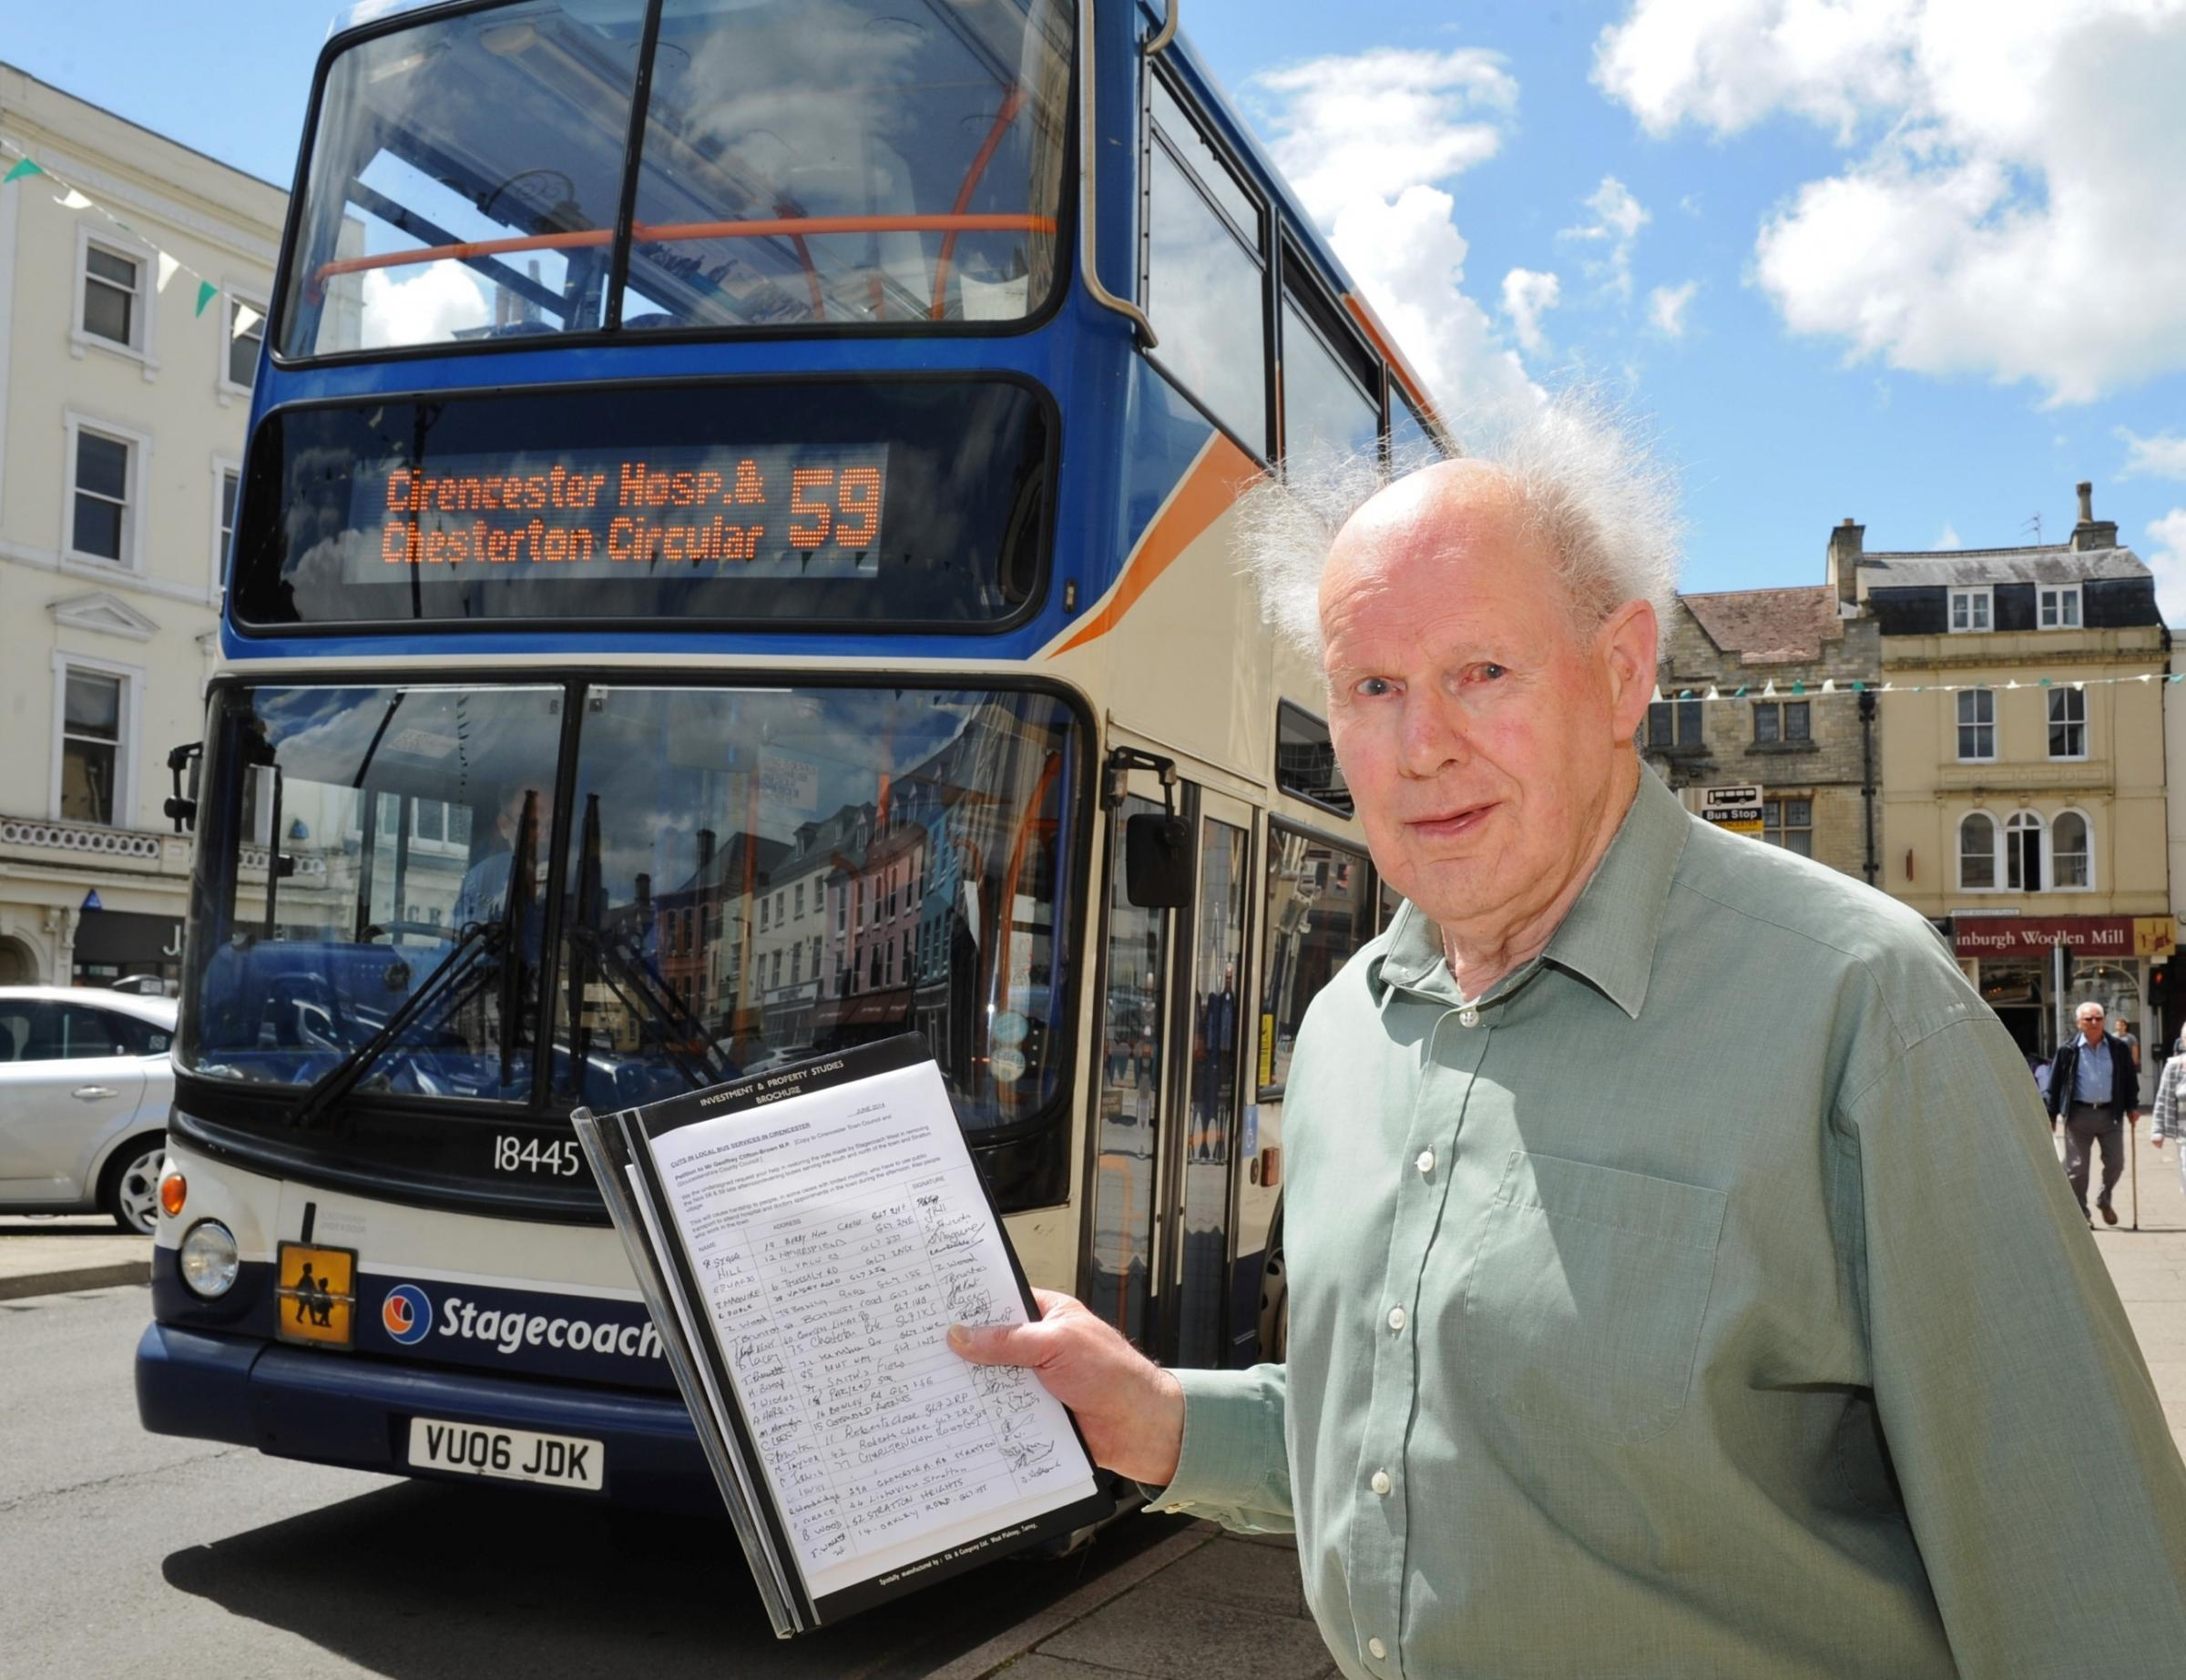 David Prewett is alarmed by bus service cuts in Cirencester